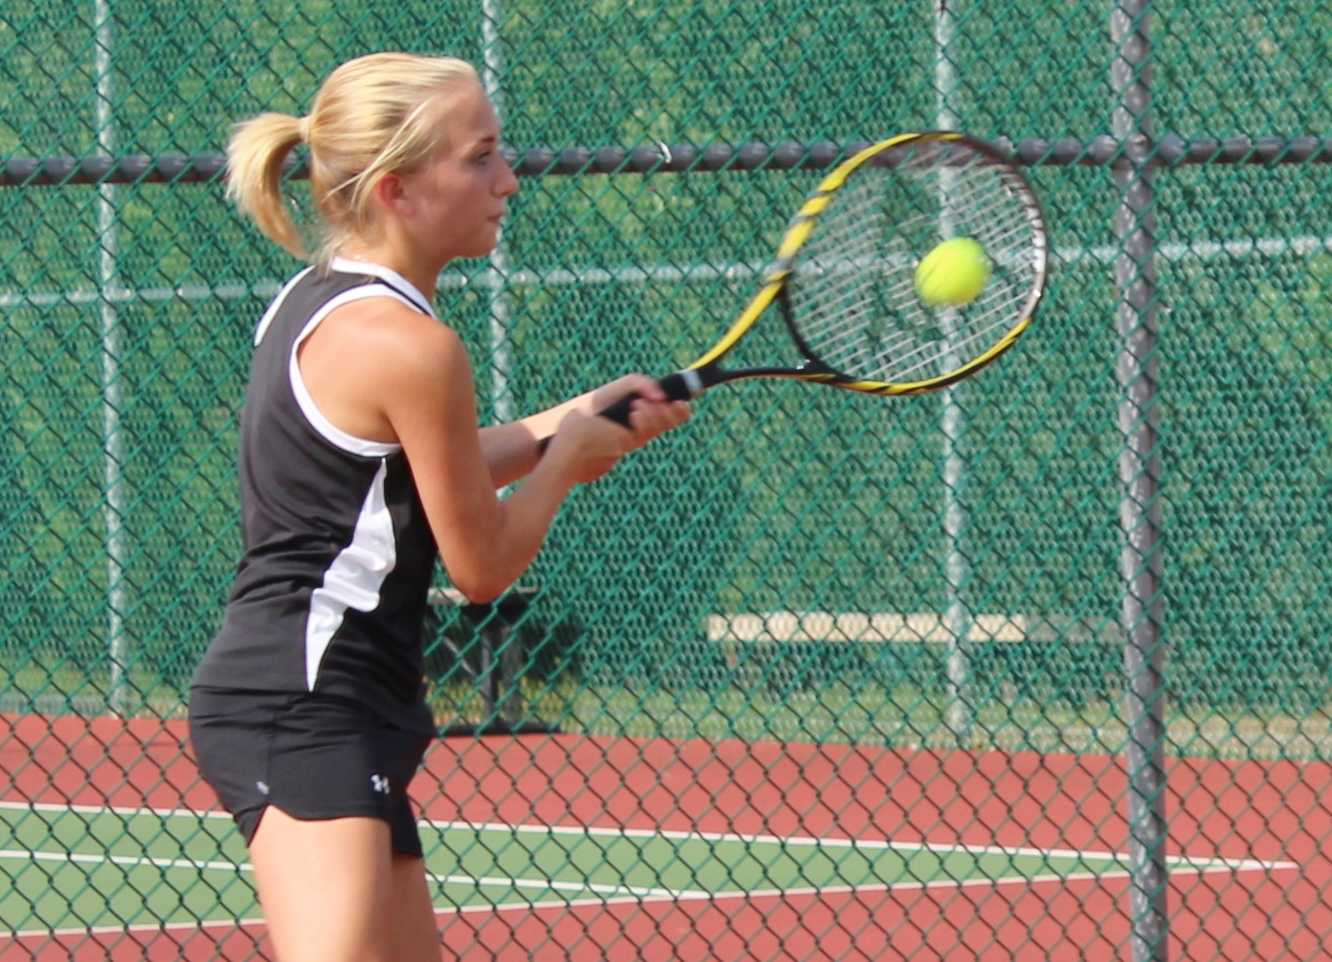 Greer High School Tennis Player Emily Swearingin returns a serve in a match this year. Swearingin helped lead the Yellow Jackets to a 4-3 victory over Powdersville Thursday night at Greer High School.